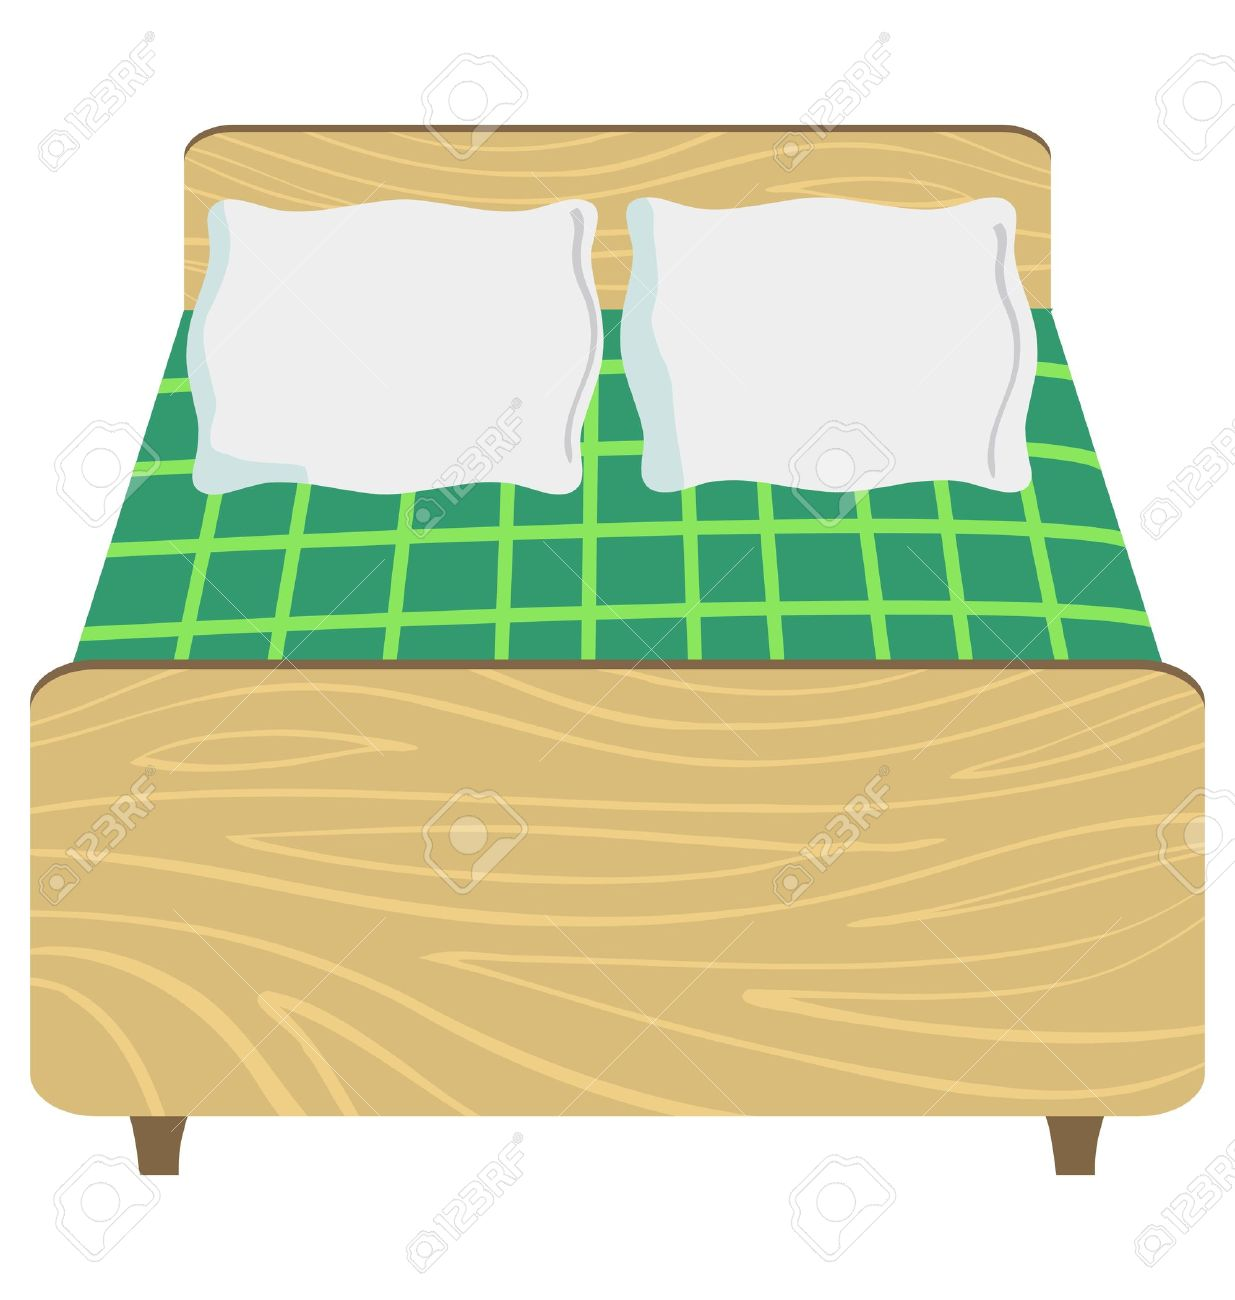 Clipart bed front view.